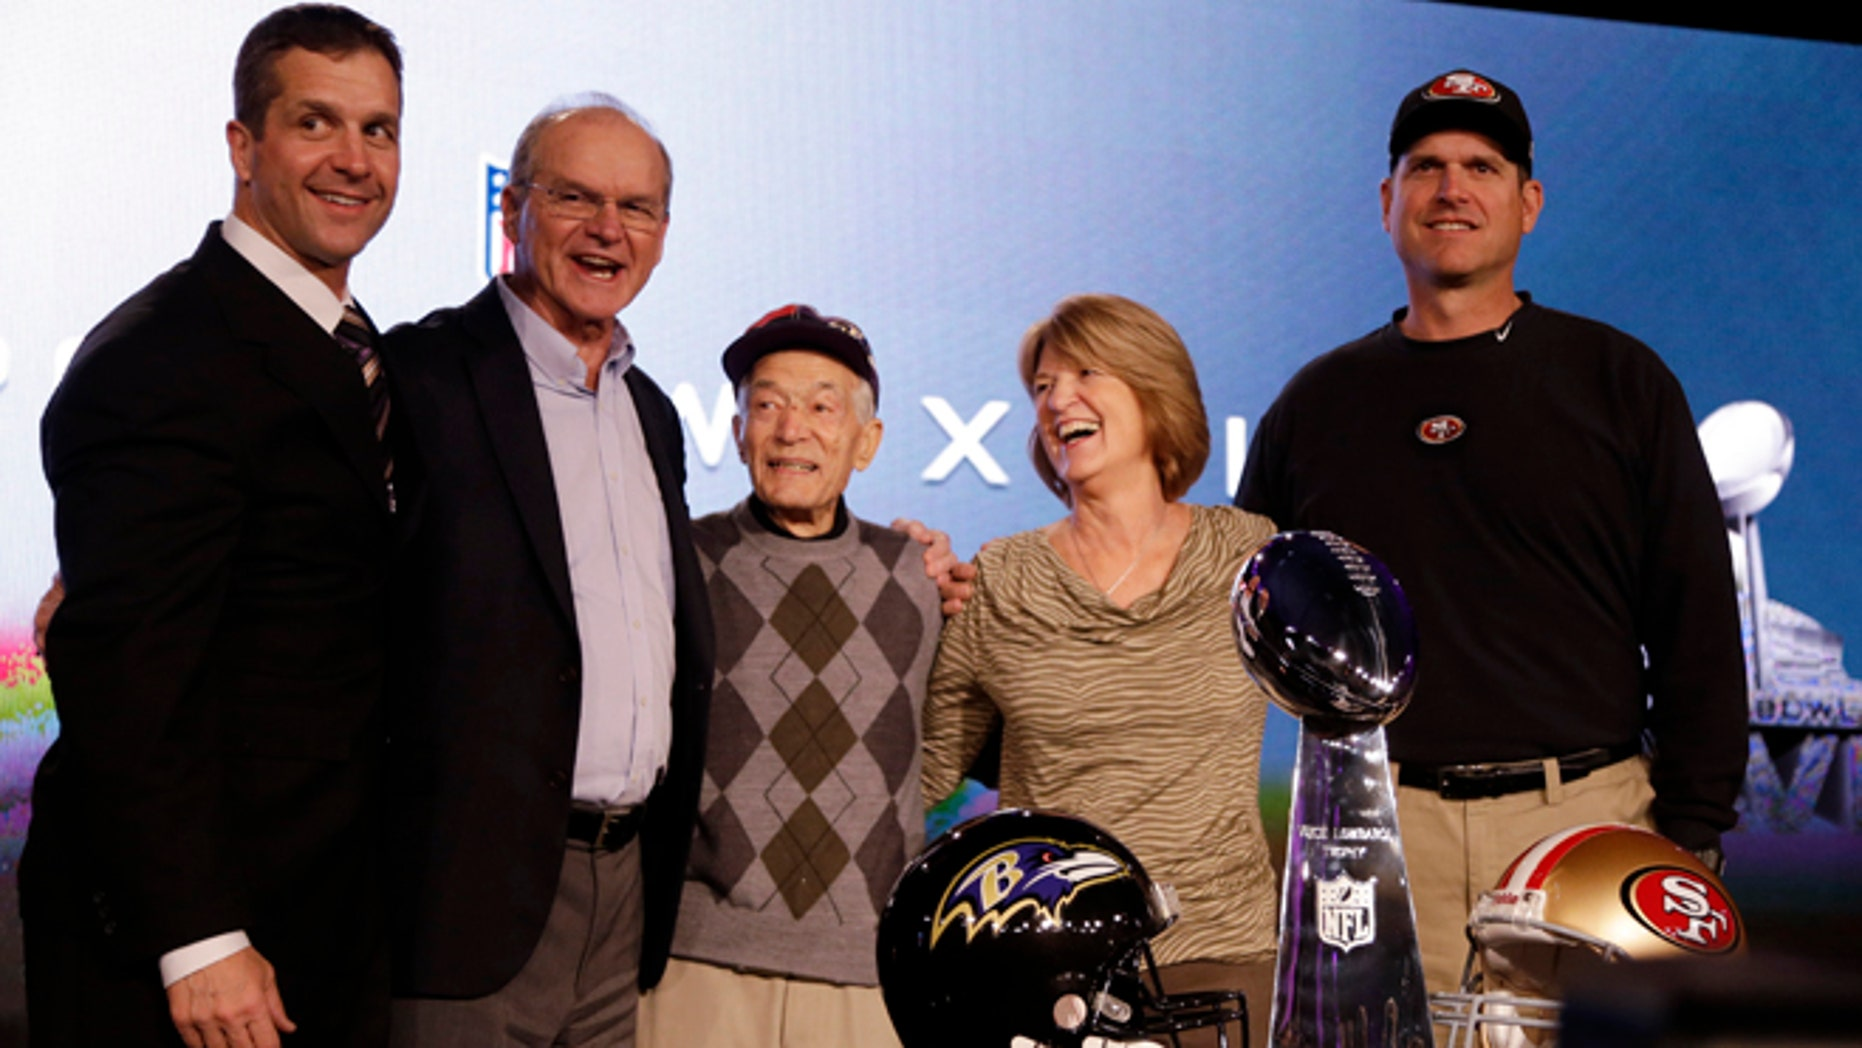 Feb. 1, 2013: San Francisco 49ers head coach Jim Harbaugh, right, and Baltimore Ravens head coach John Harbaugh, left, pose with their parents, Jack and Jackie, and grandfather Joe Cipiti during a news conference for the NFL Super Bowl XLVII football game in New Orleans.